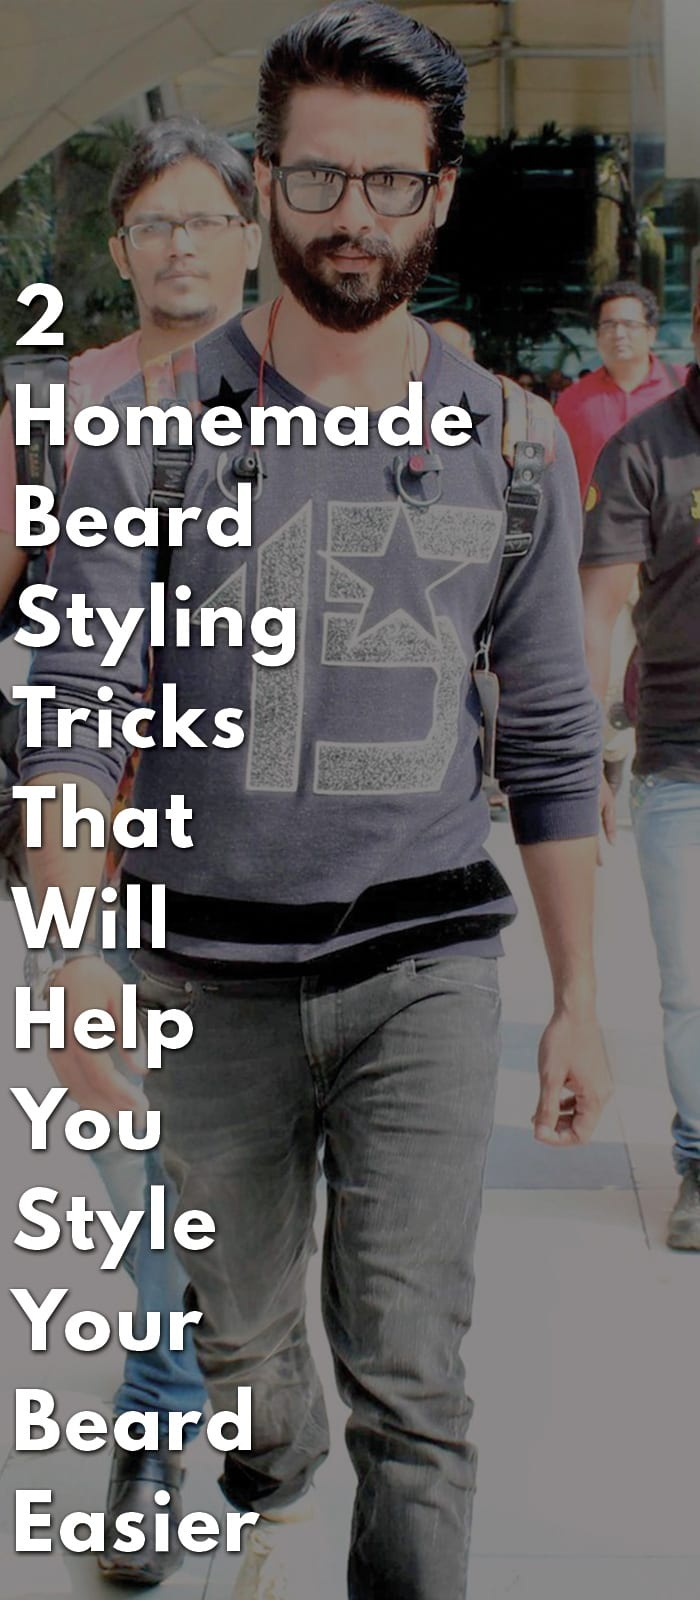 2-Homemade-Beard-Styling-Tricks-That-Will-Help-You-Style-Your-Beard-Easier